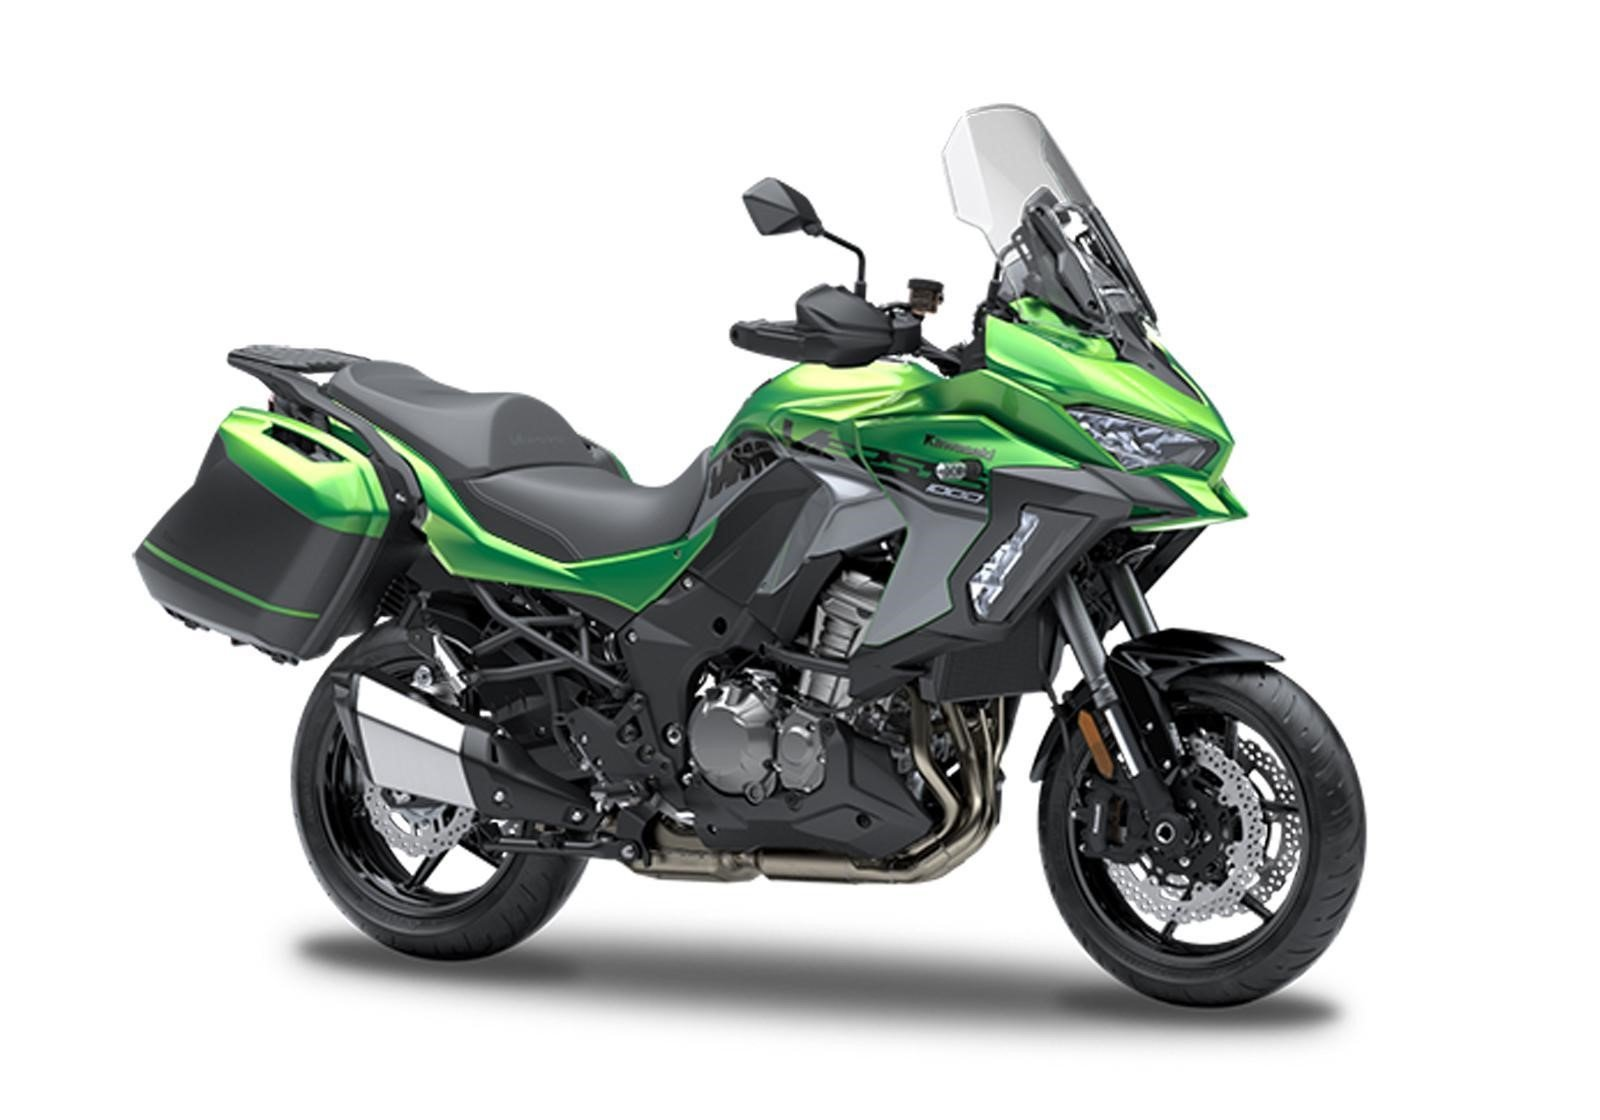 New 2020 Kawasaki Versys1000SE Tourer*£800 Paid&Free Deliver For Sale (picture 1 of 6)